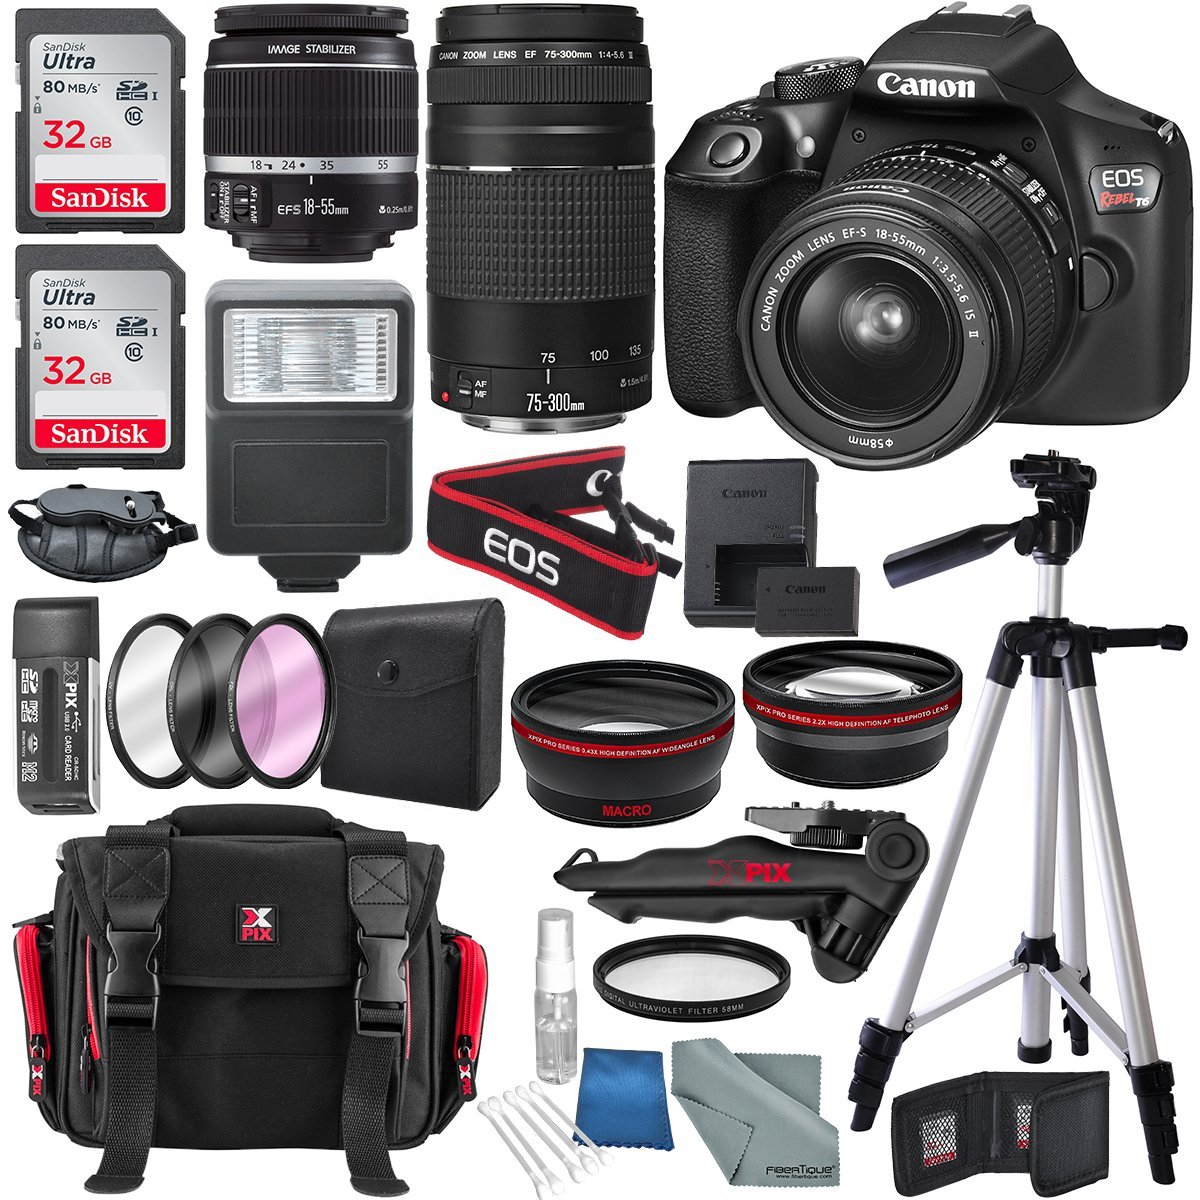 Canon EOS Rebel T6 DSLR Camera with 18-55mm, EF 75-300mm Lens, and Deluxe Bundle 1159C008